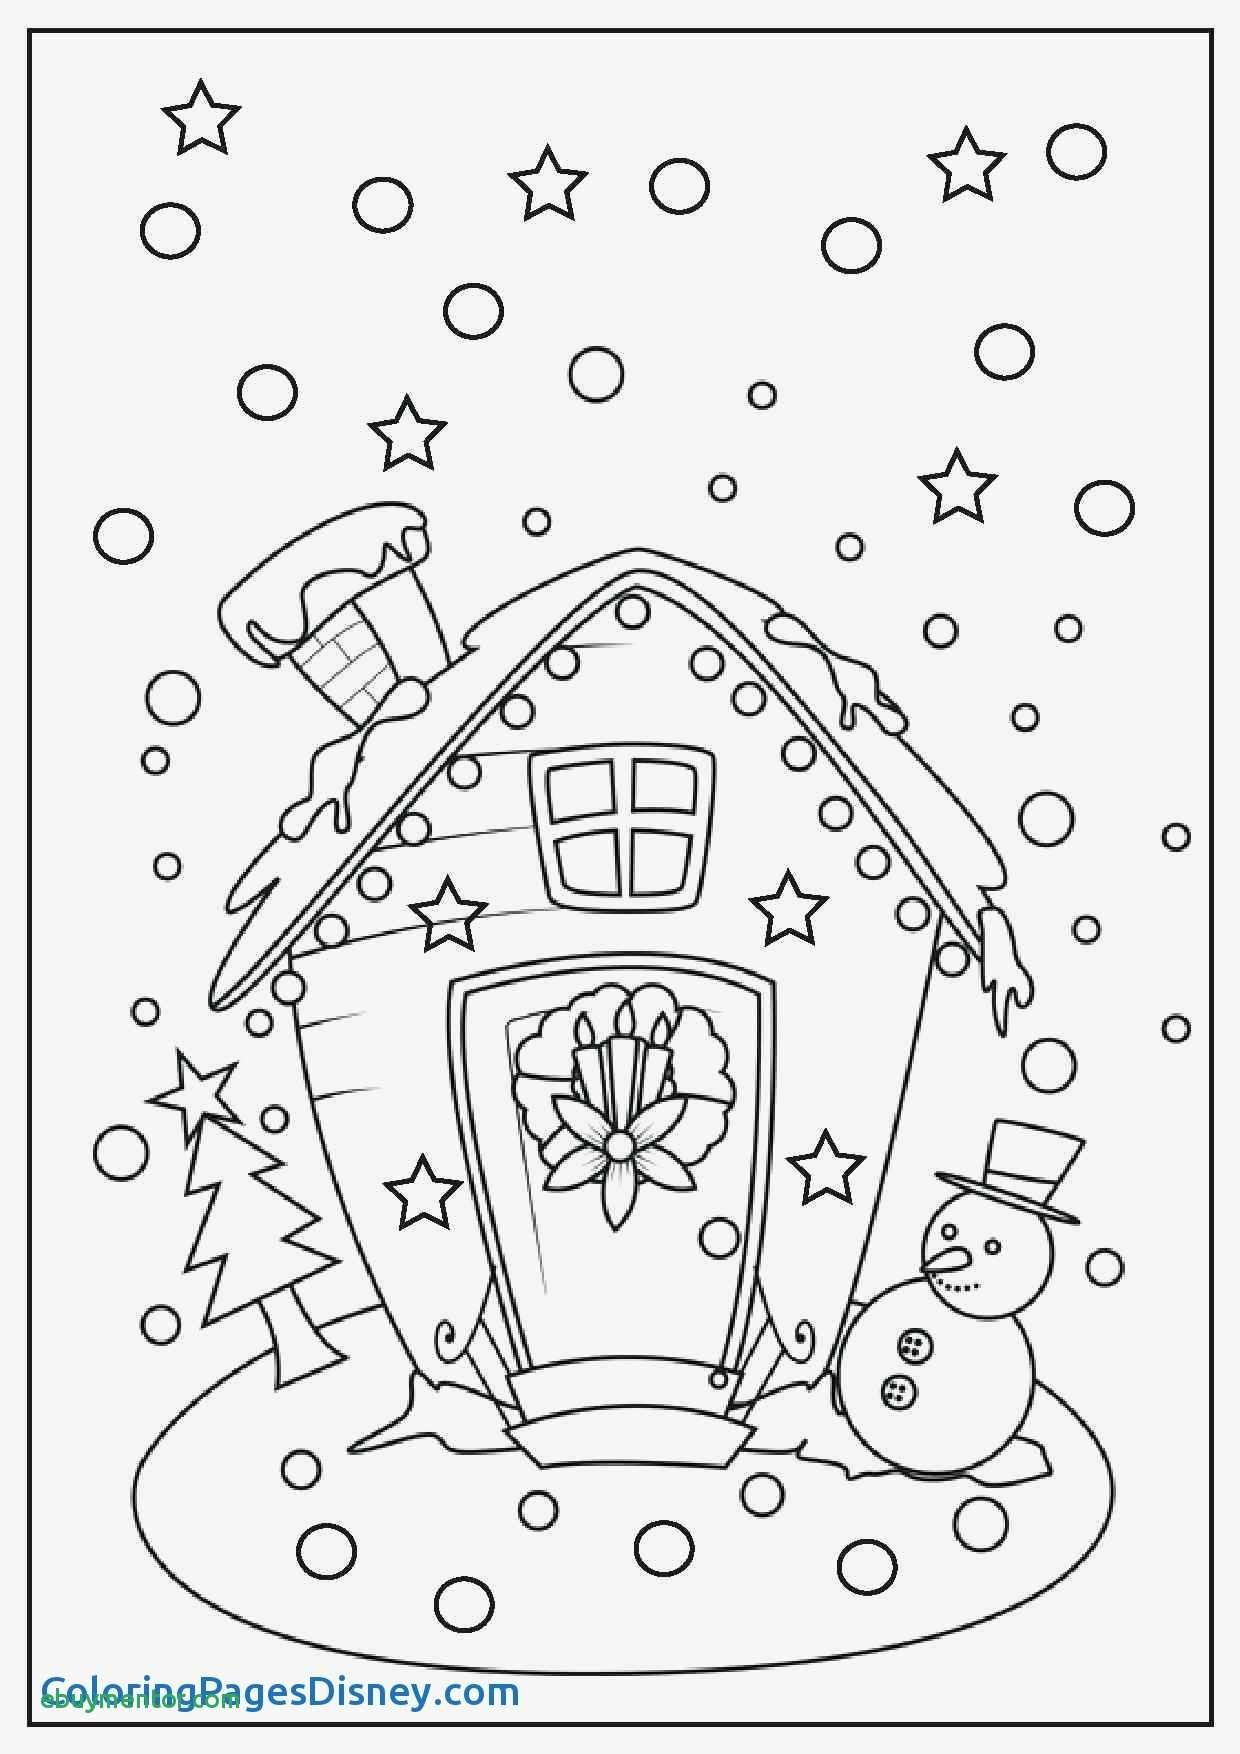 21 Hospital Coloring Pages For Kids Download Coloring Sheets